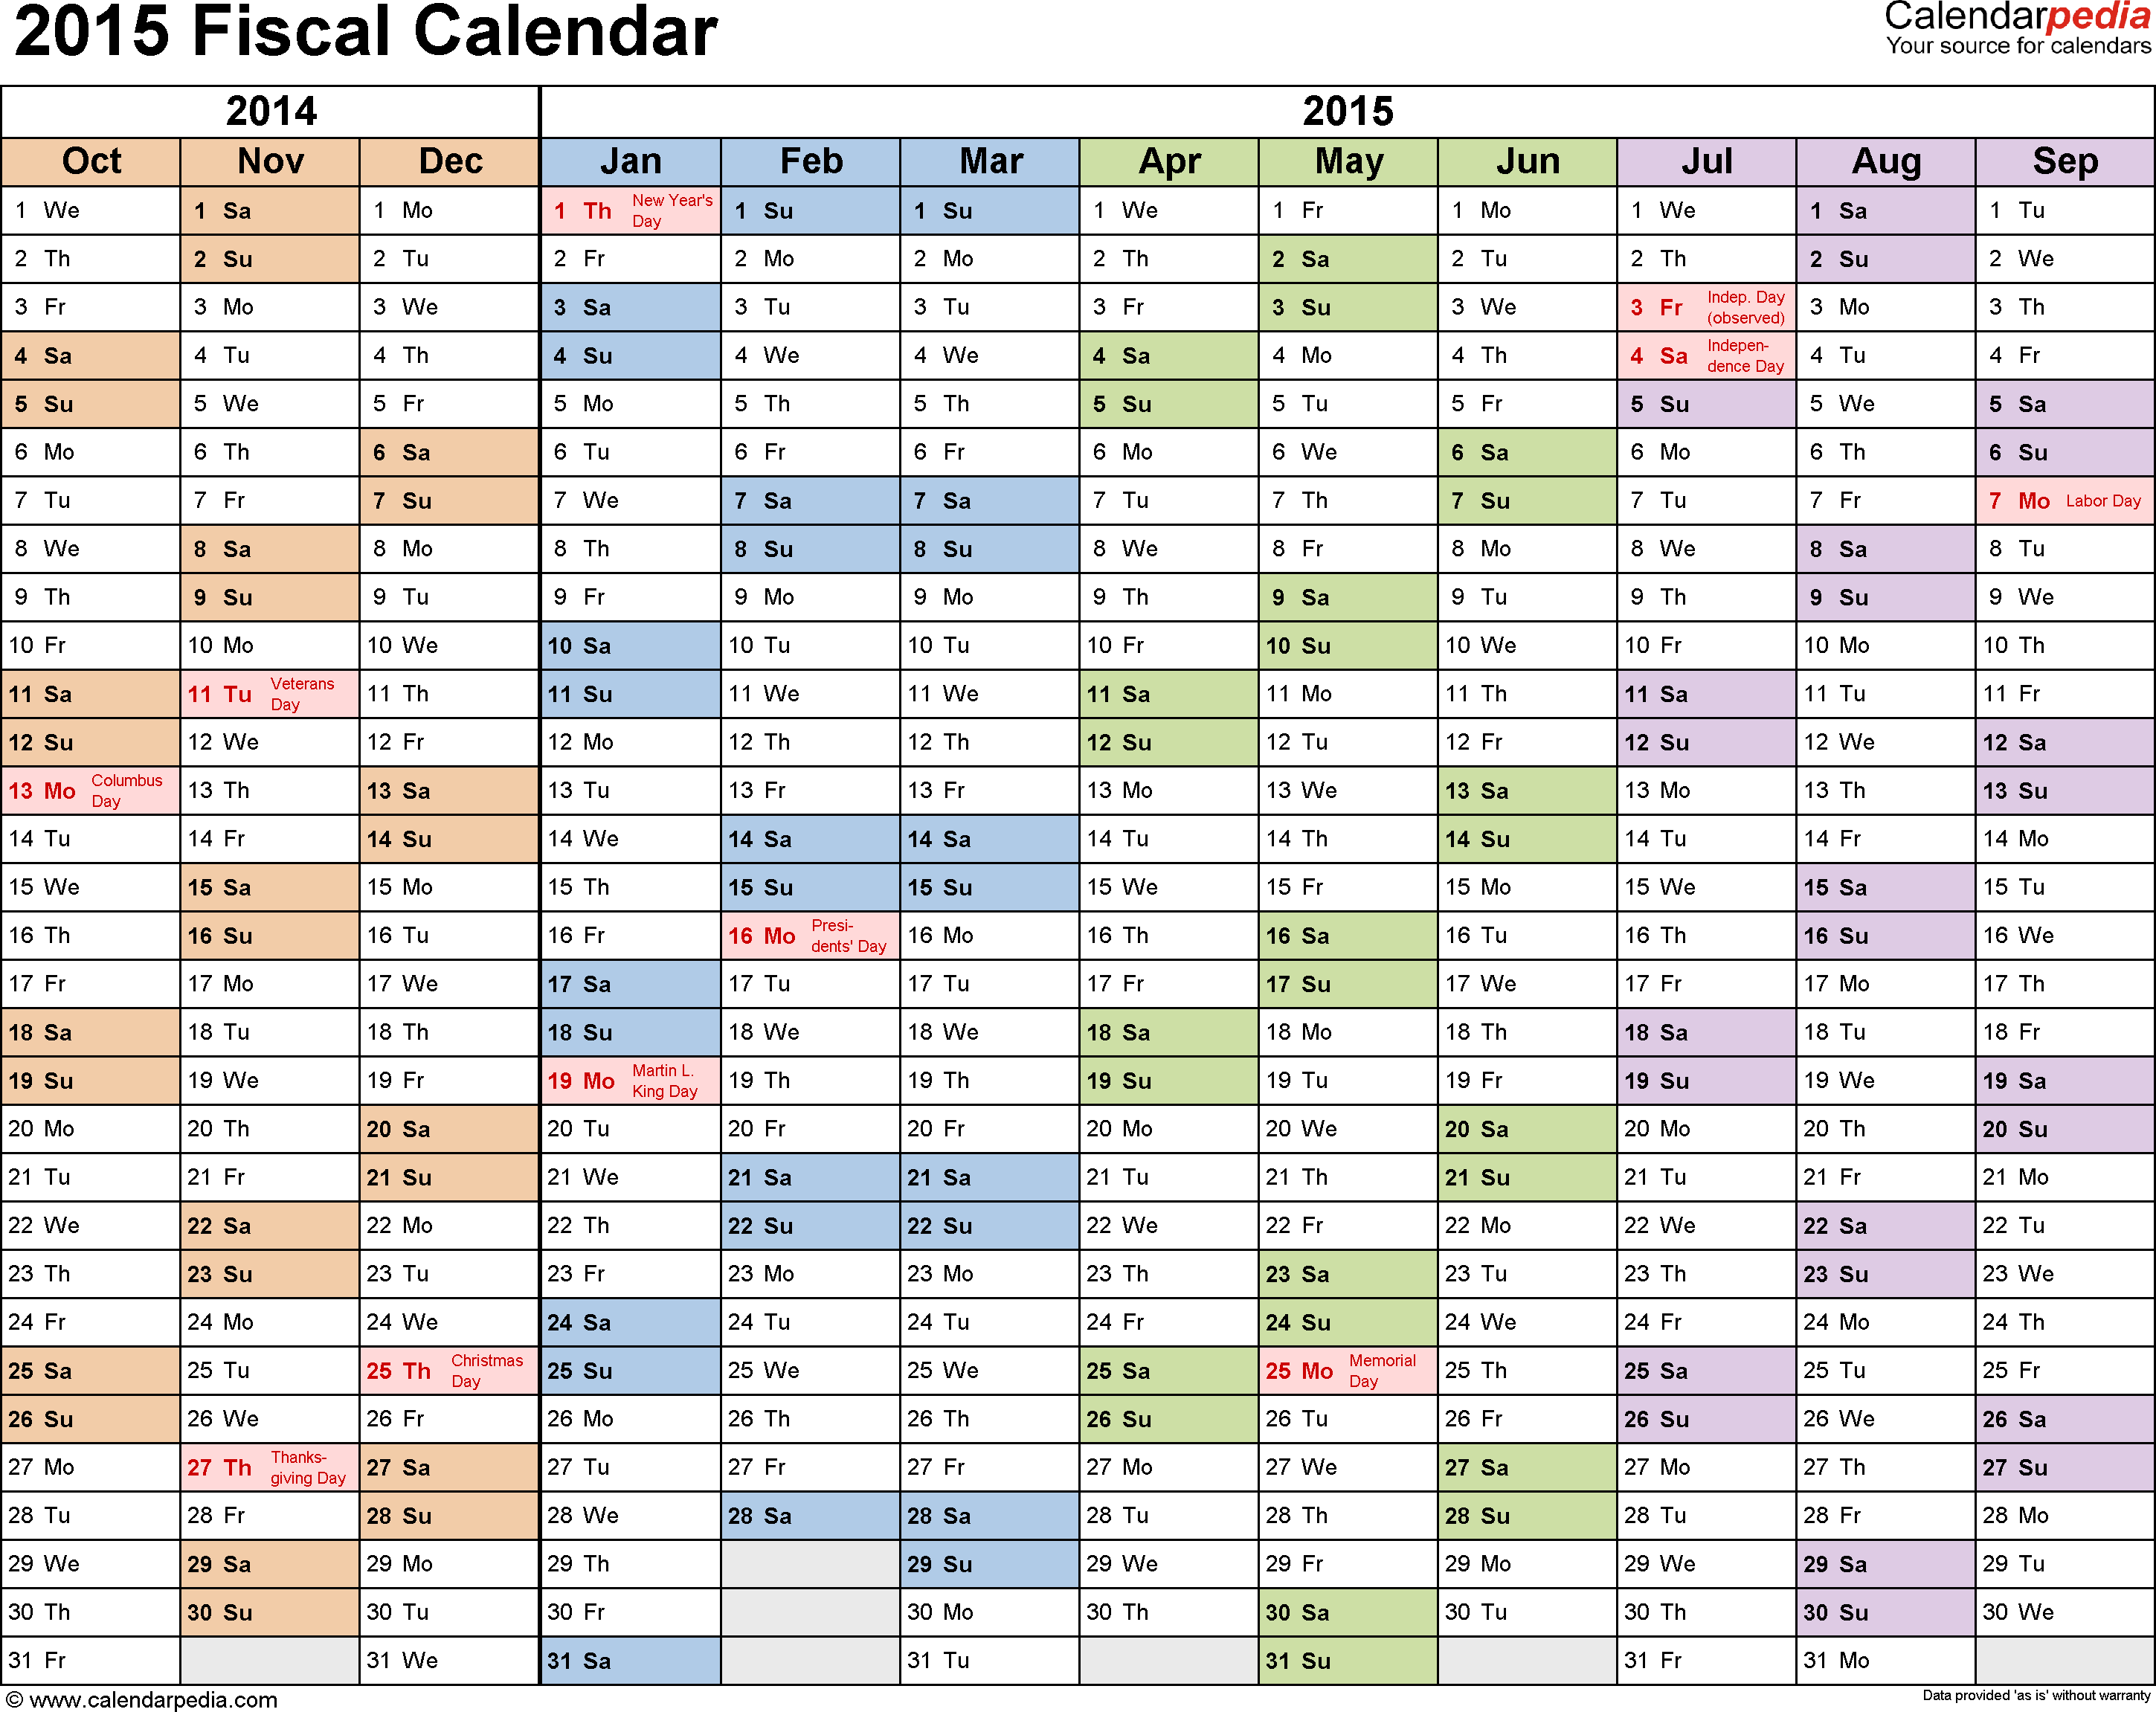 2015 yearly calendar template in landscape format - fiscal calendars 2015 as free printable excel templates